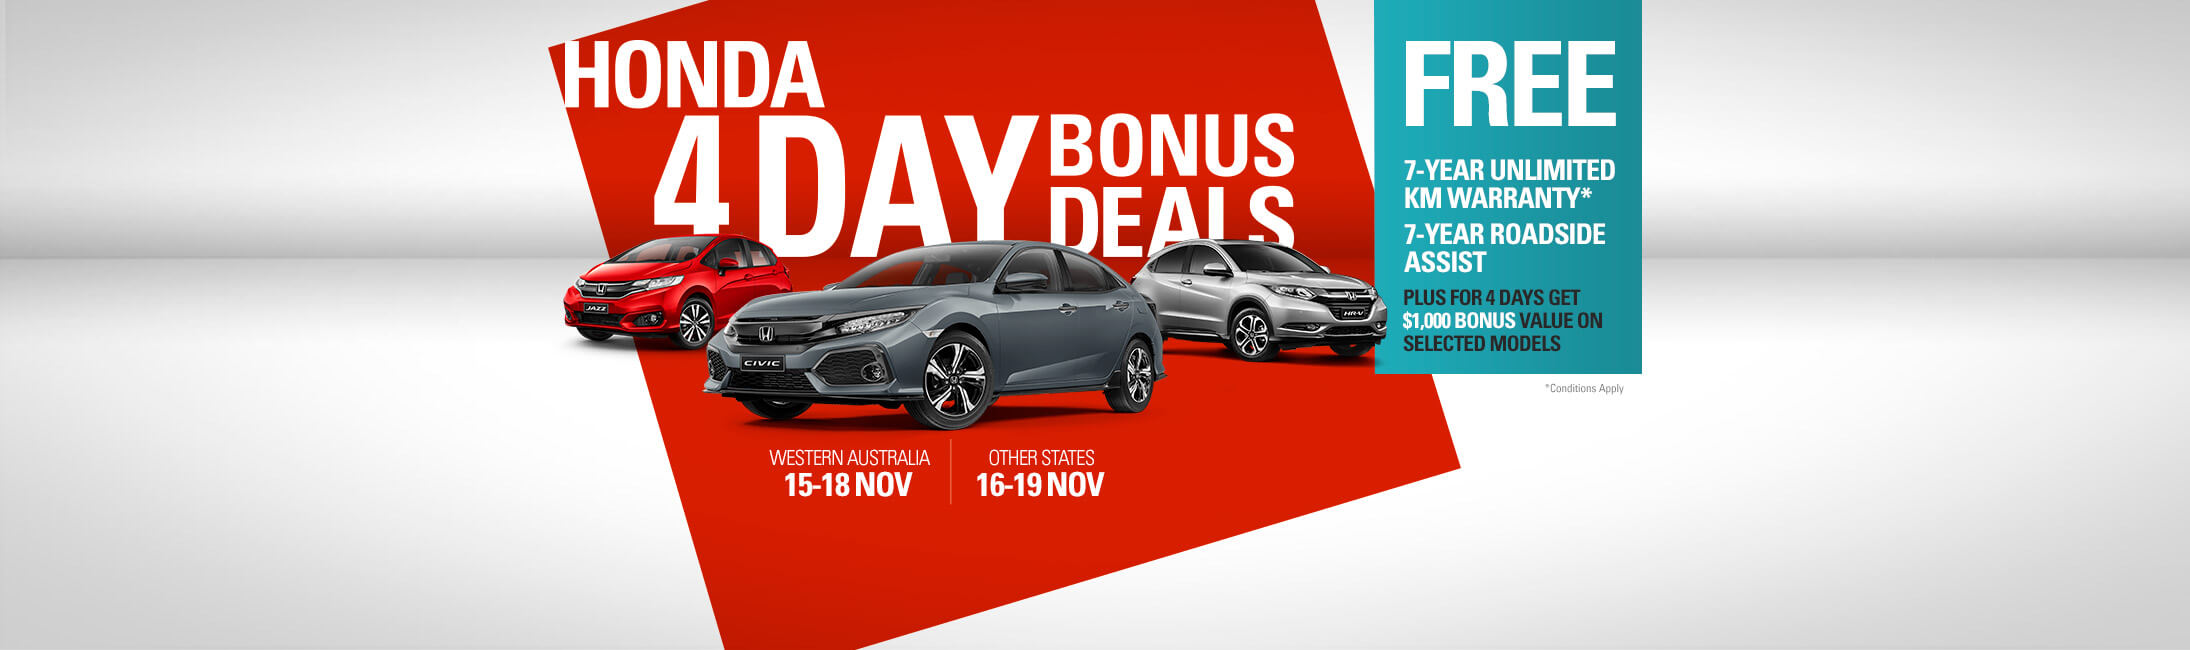 Honda 4 Day Sale